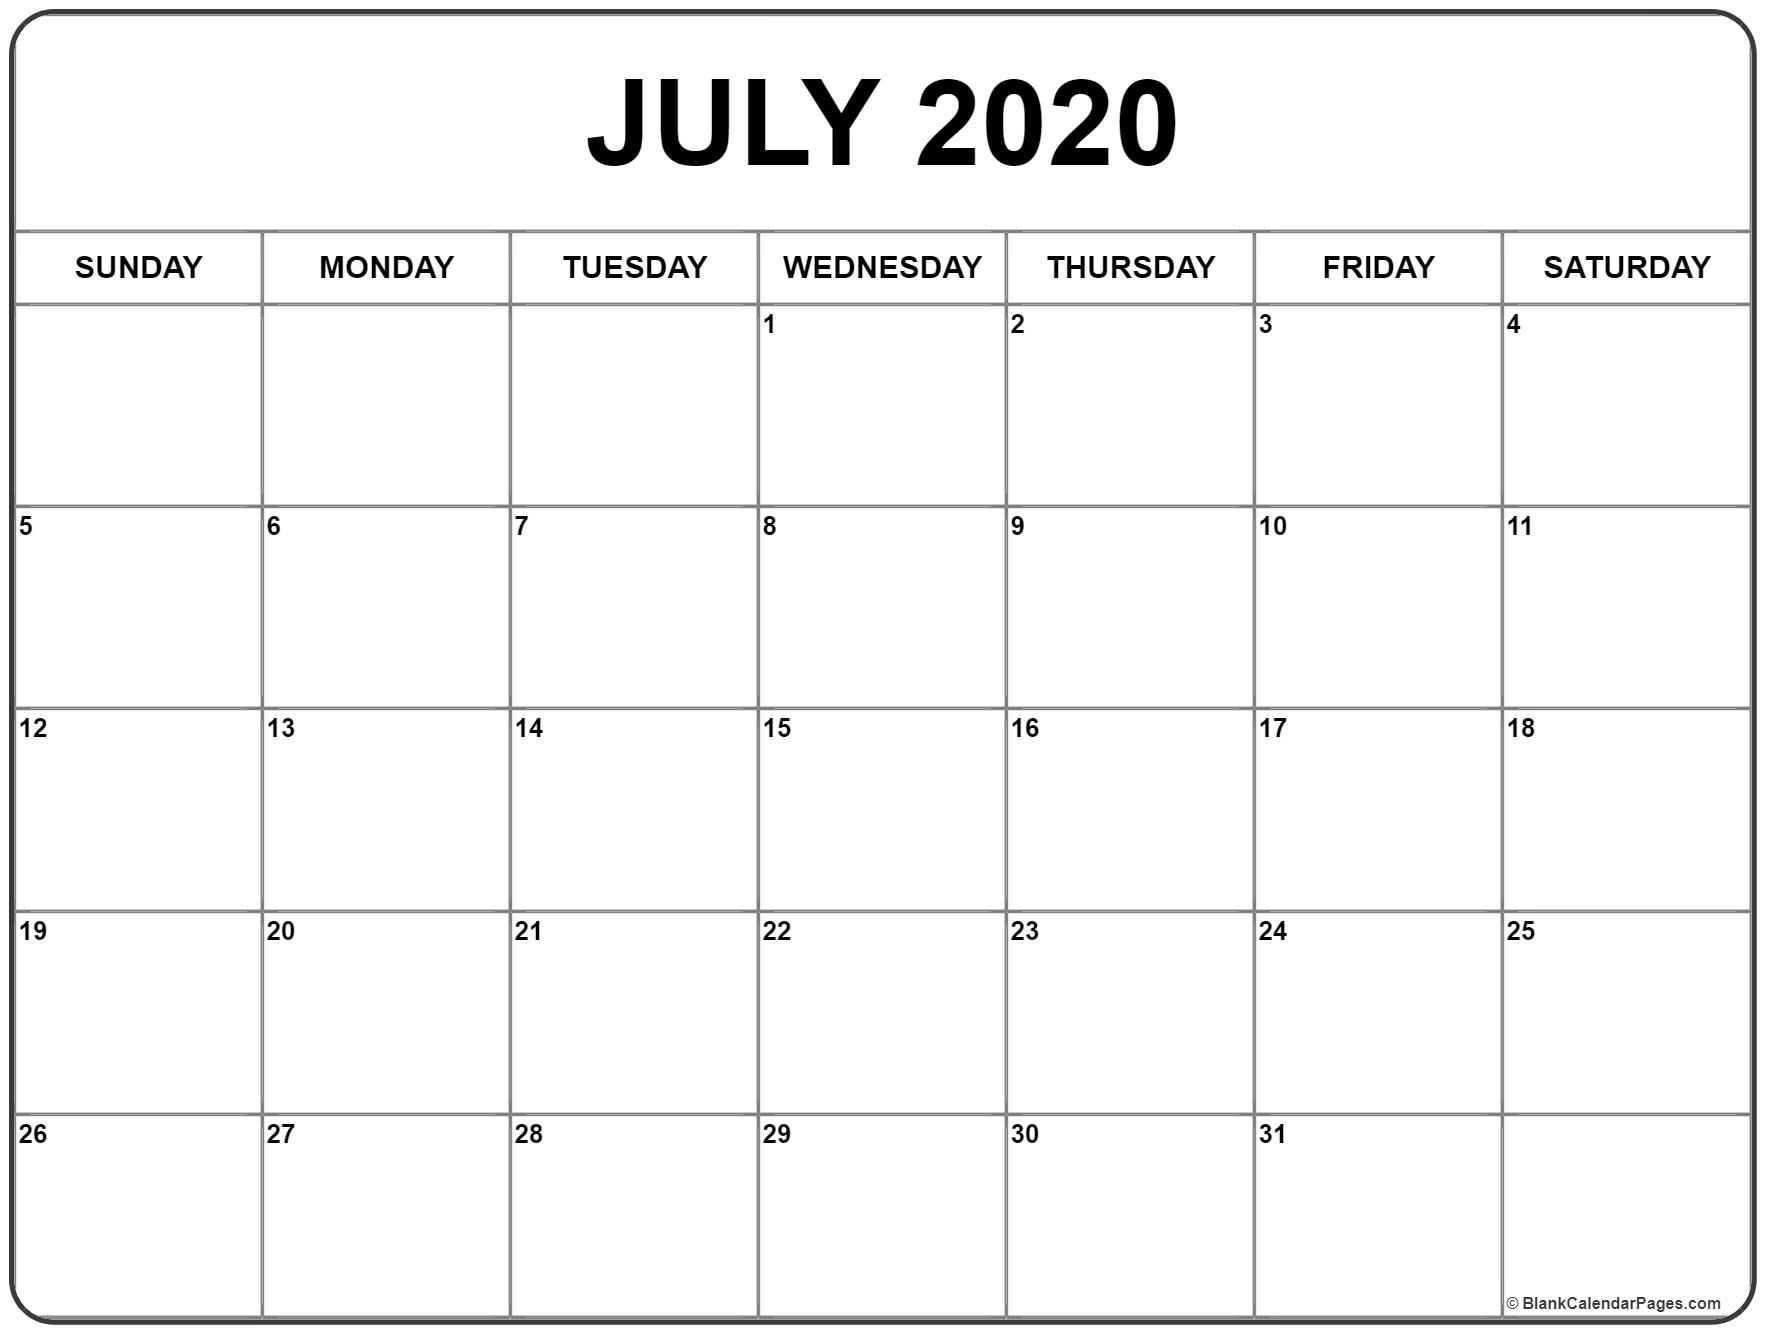 July 2020 Calendar | Printable Calendars | Printable Blank-Monthly Calendar Printable June And July 2020